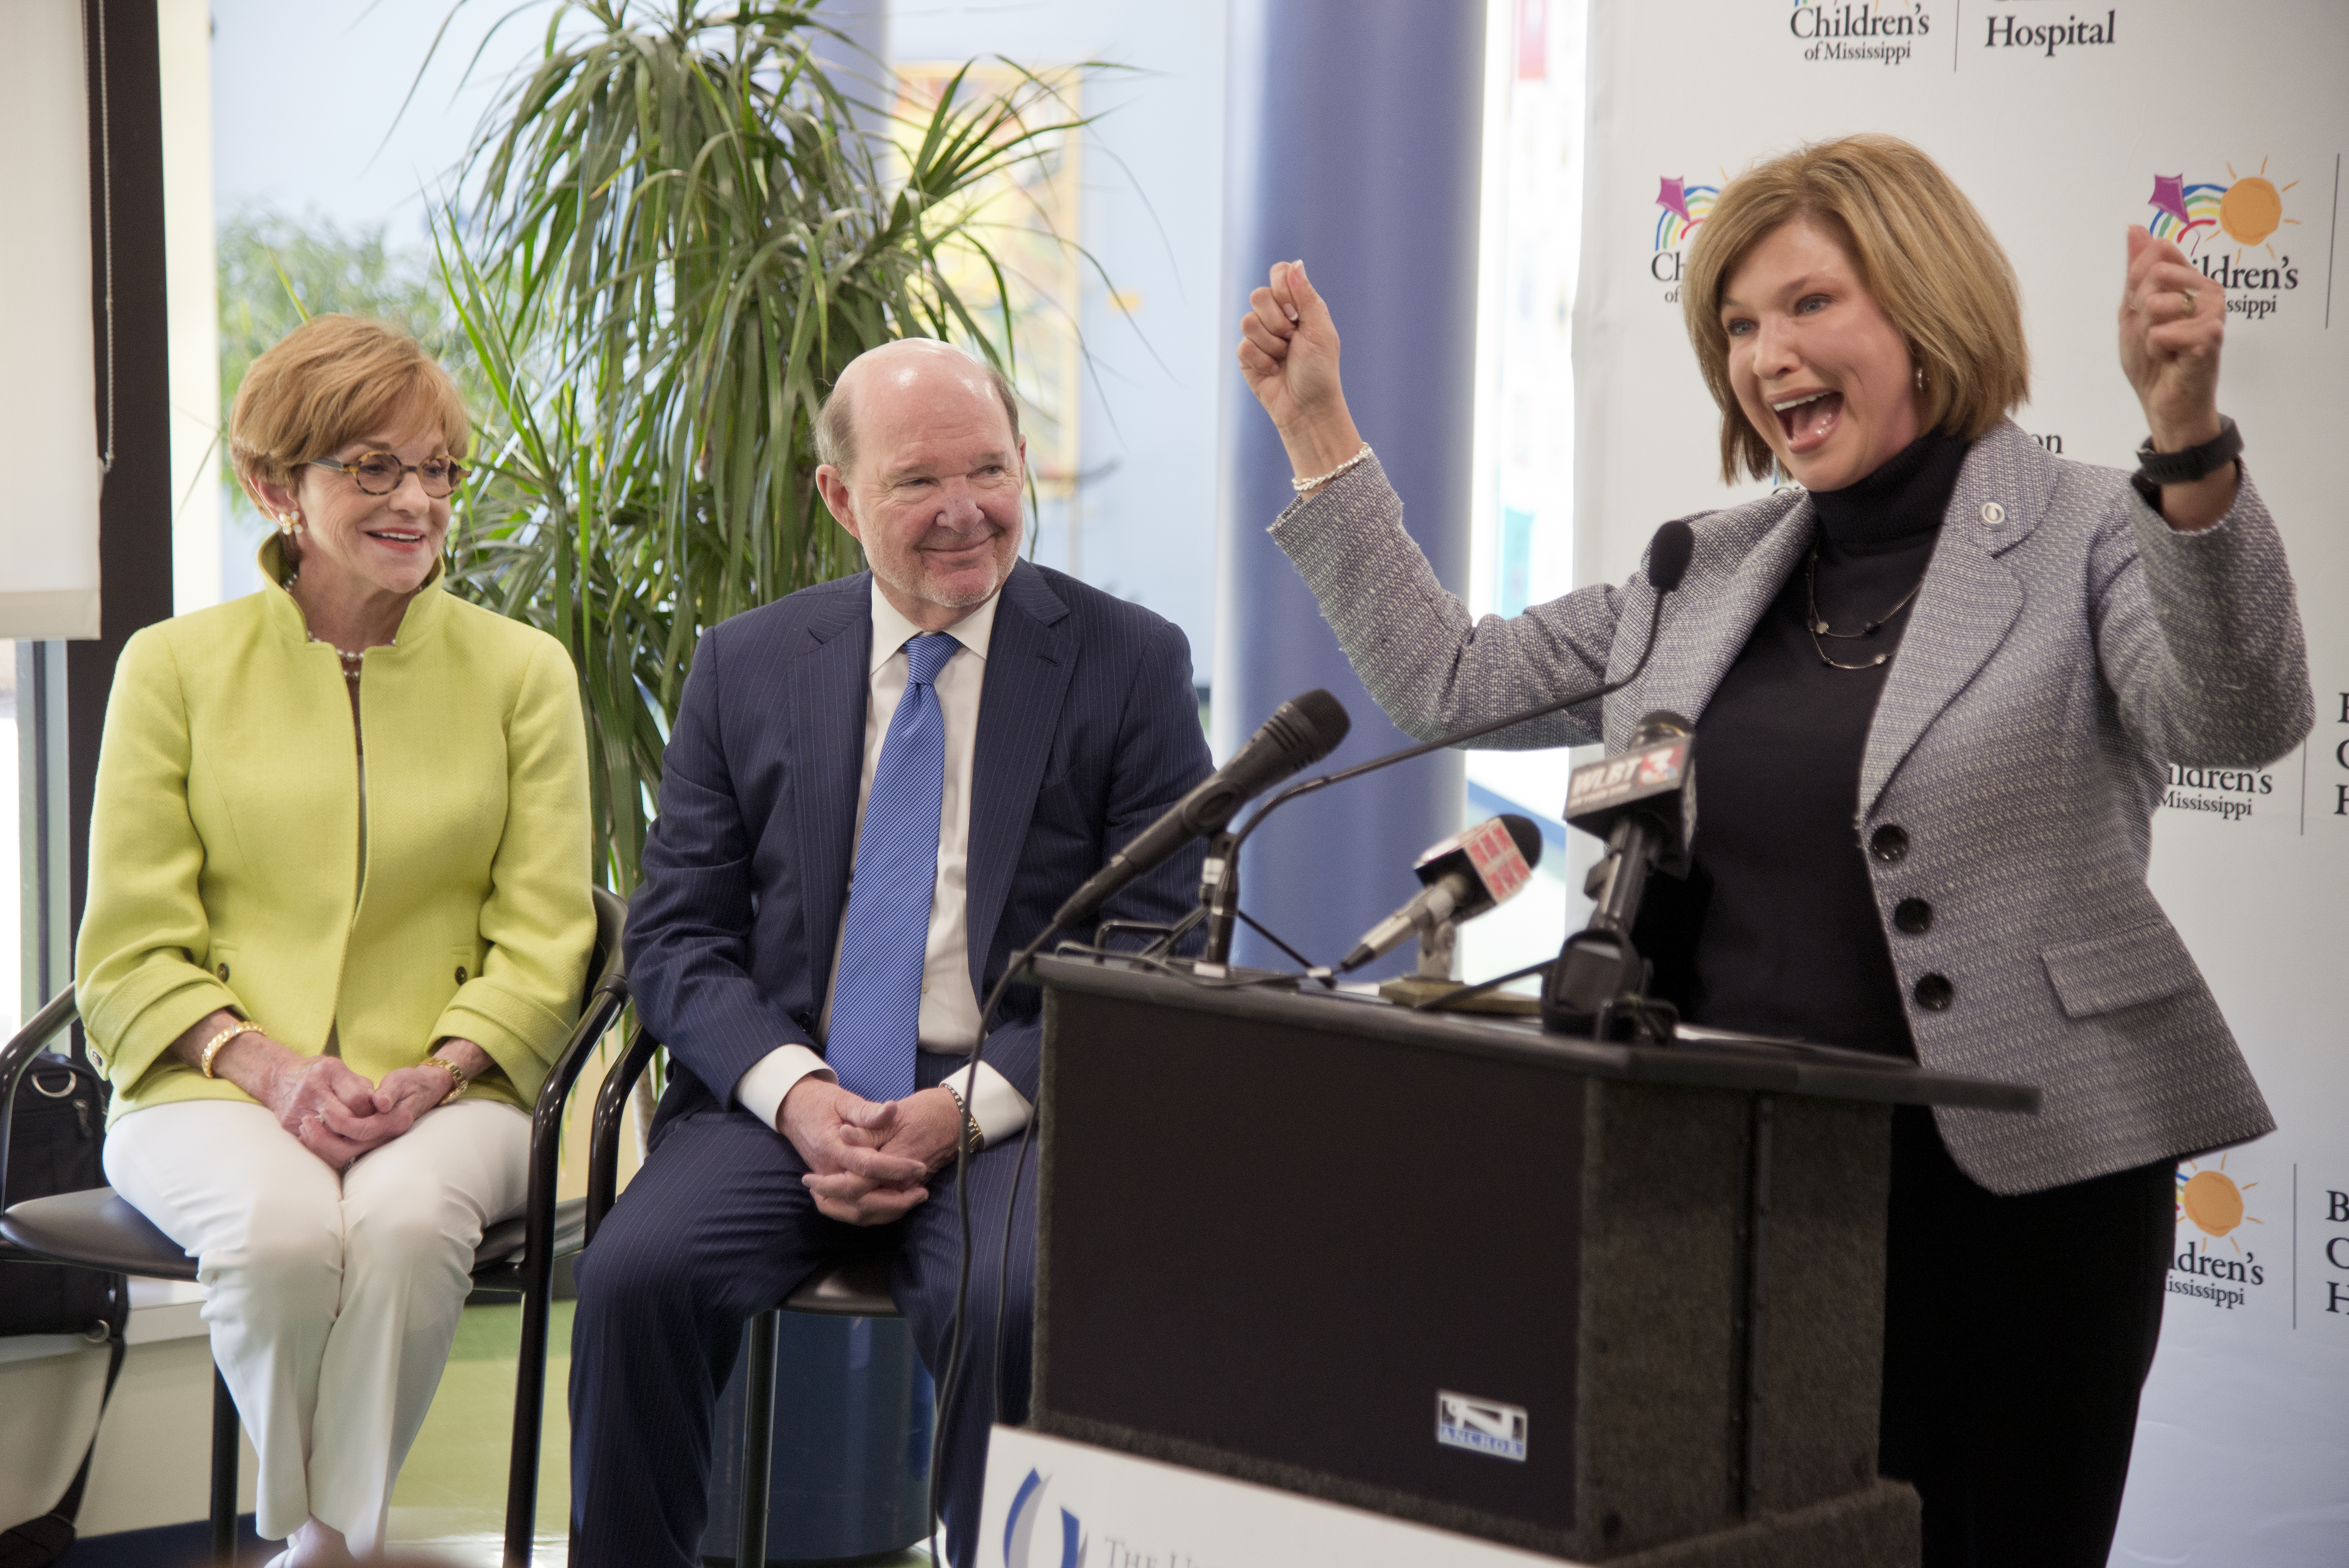 Eli, Abby Manning pledge $1M to Children's of Mississippi's 'Growing